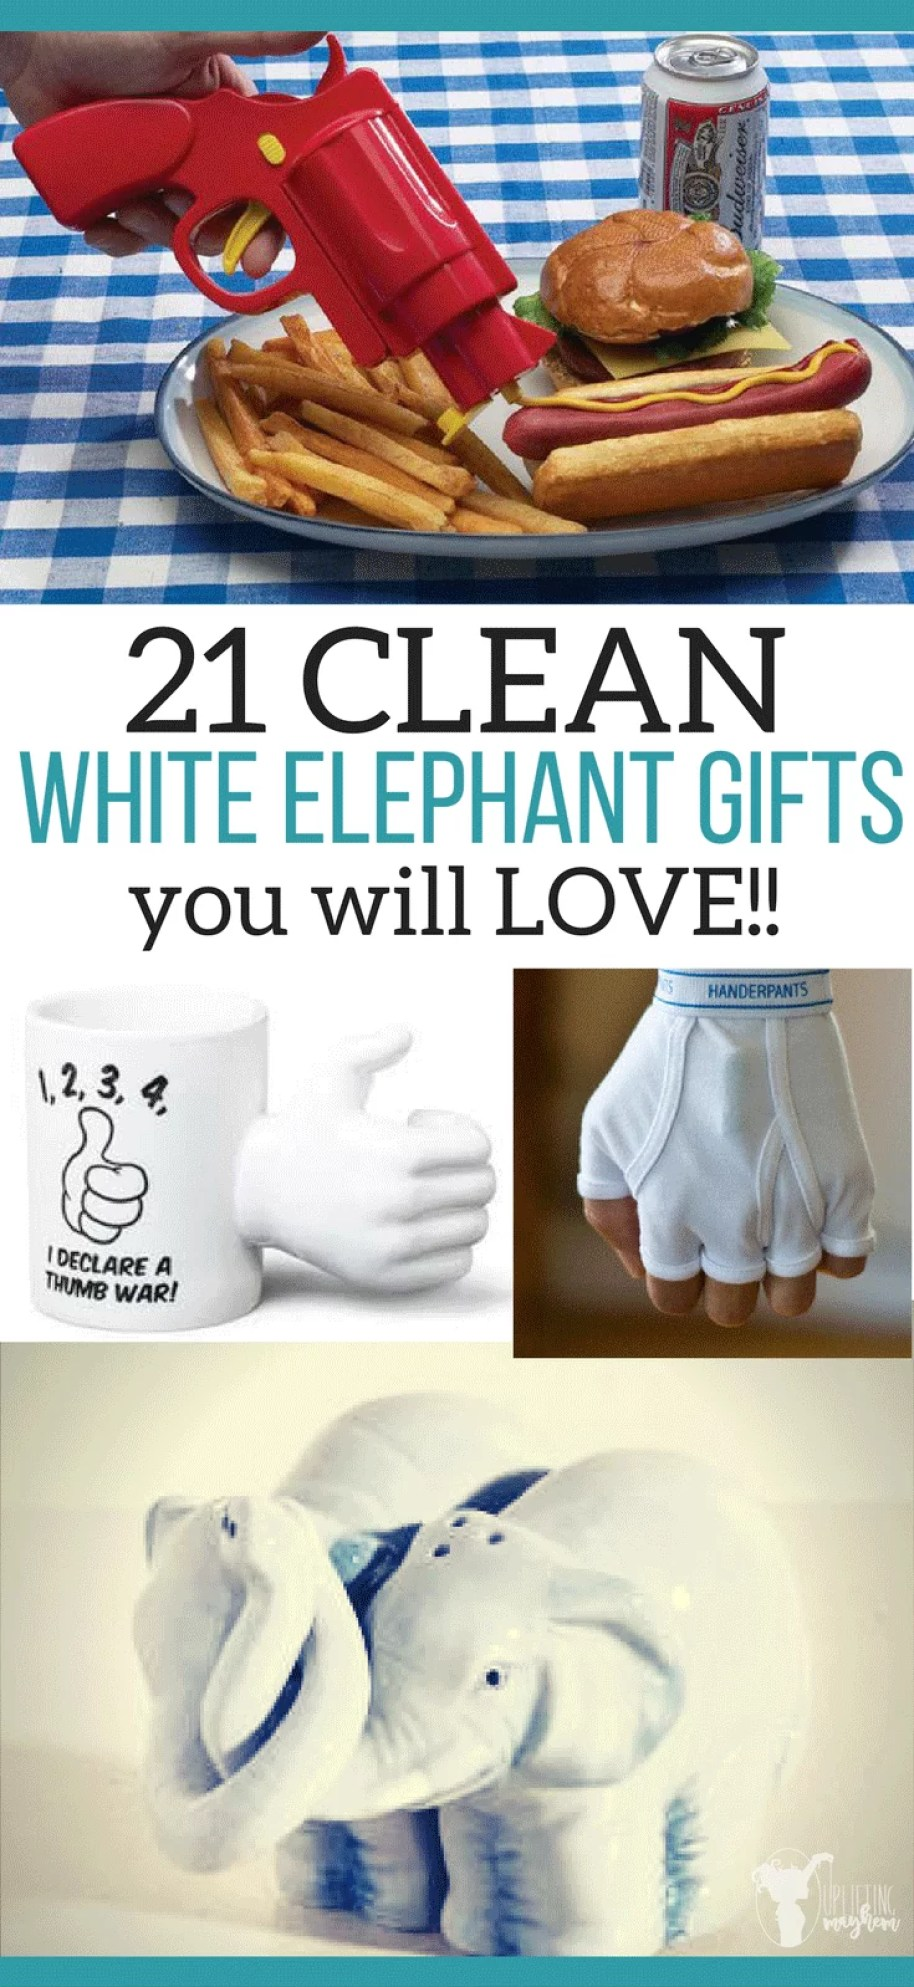 Wondering what white elephant gifts you should bring to the upcoming gift exchange at this year's holiday party? We've got a wide assortment of white elephant gifts so you can be Johnny on the spot with the perfect gift for this occasion. Be the hero of the gift exchange by bringing anything from this list.